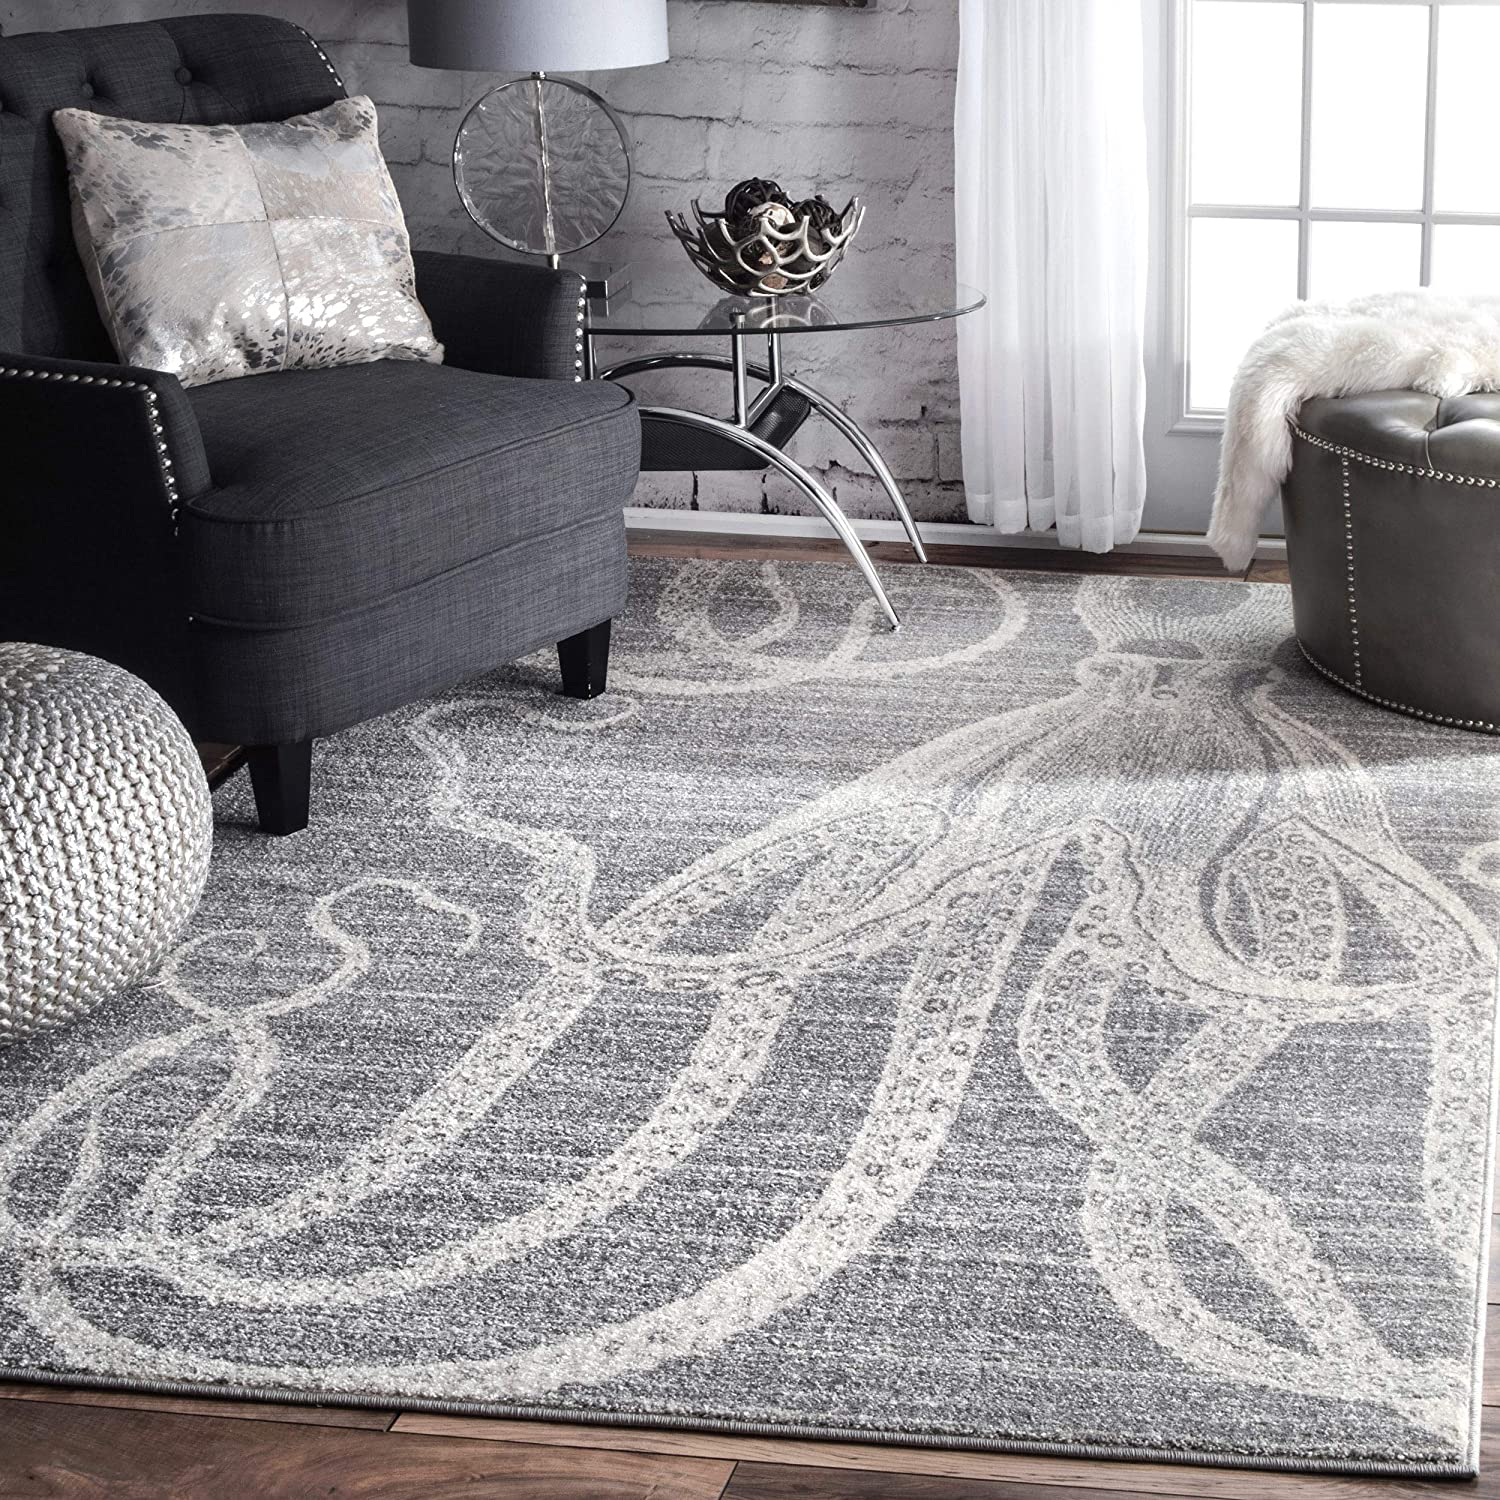 nuLOOM Thomas Paul Octopus Area Rug Dealing full price Super sale reduction x Grey 7' 6